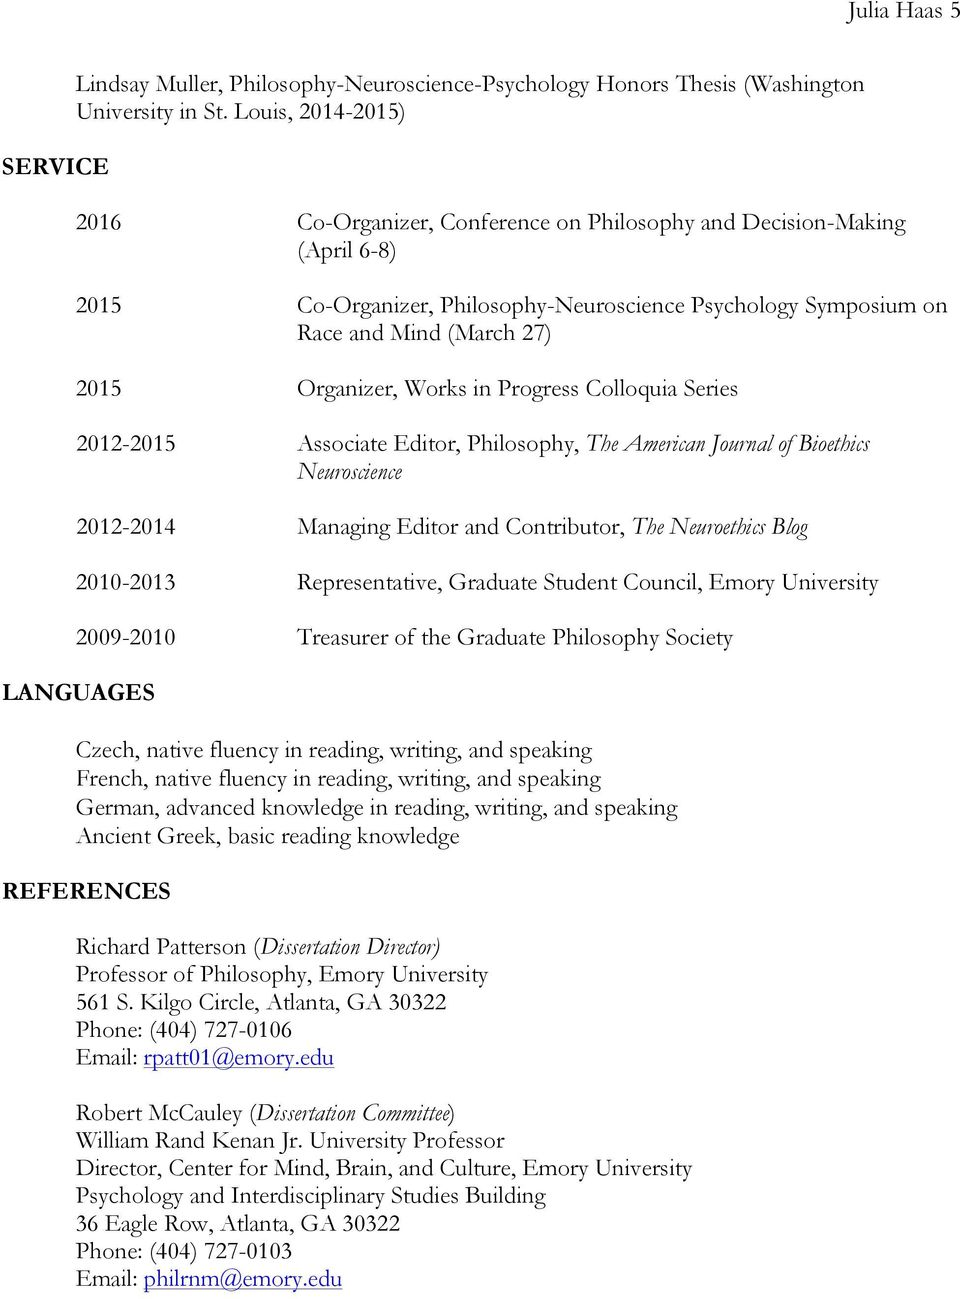 Organizer, Works in Progress Colloquia Series 2012-2015 Associate Editor, Philosophy, The American Journal of Bioethics Neuroscience 2012-2014 Managing Editor and Contributor, The Neuroethics Blog